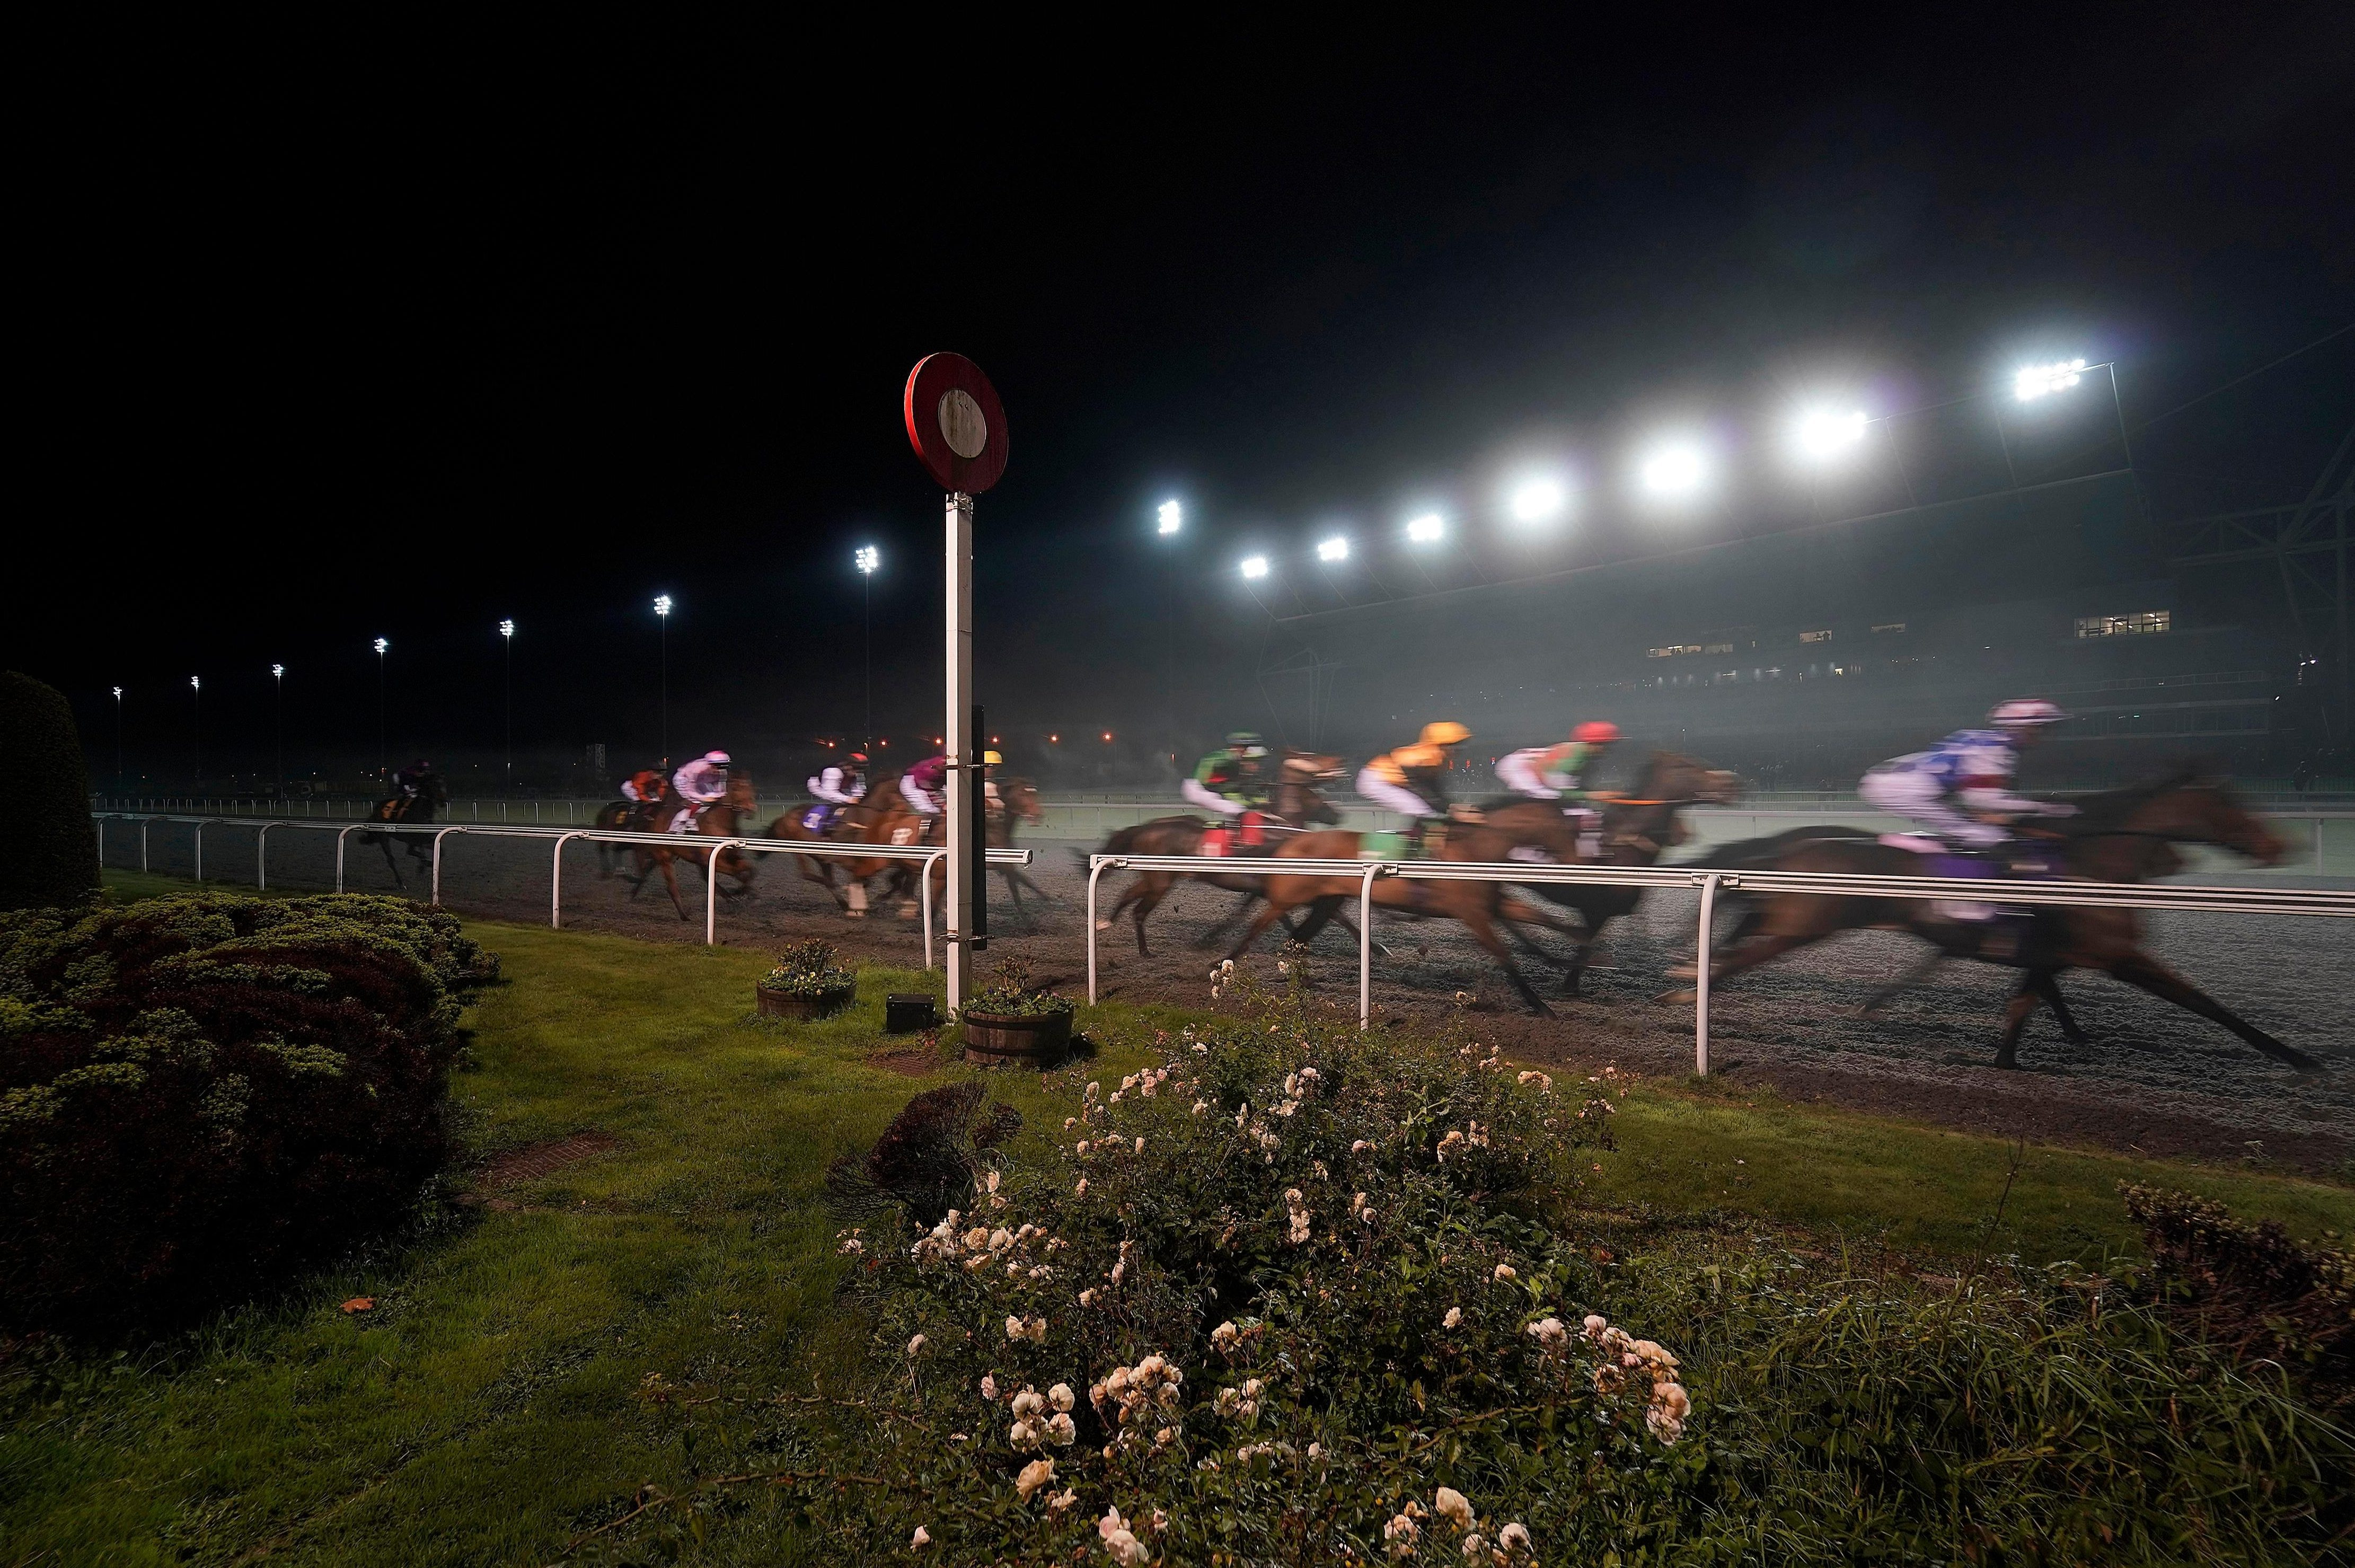 Wednesday's racing tips: A big-priced belter to fill your pockets at Kempton from Jack Keene